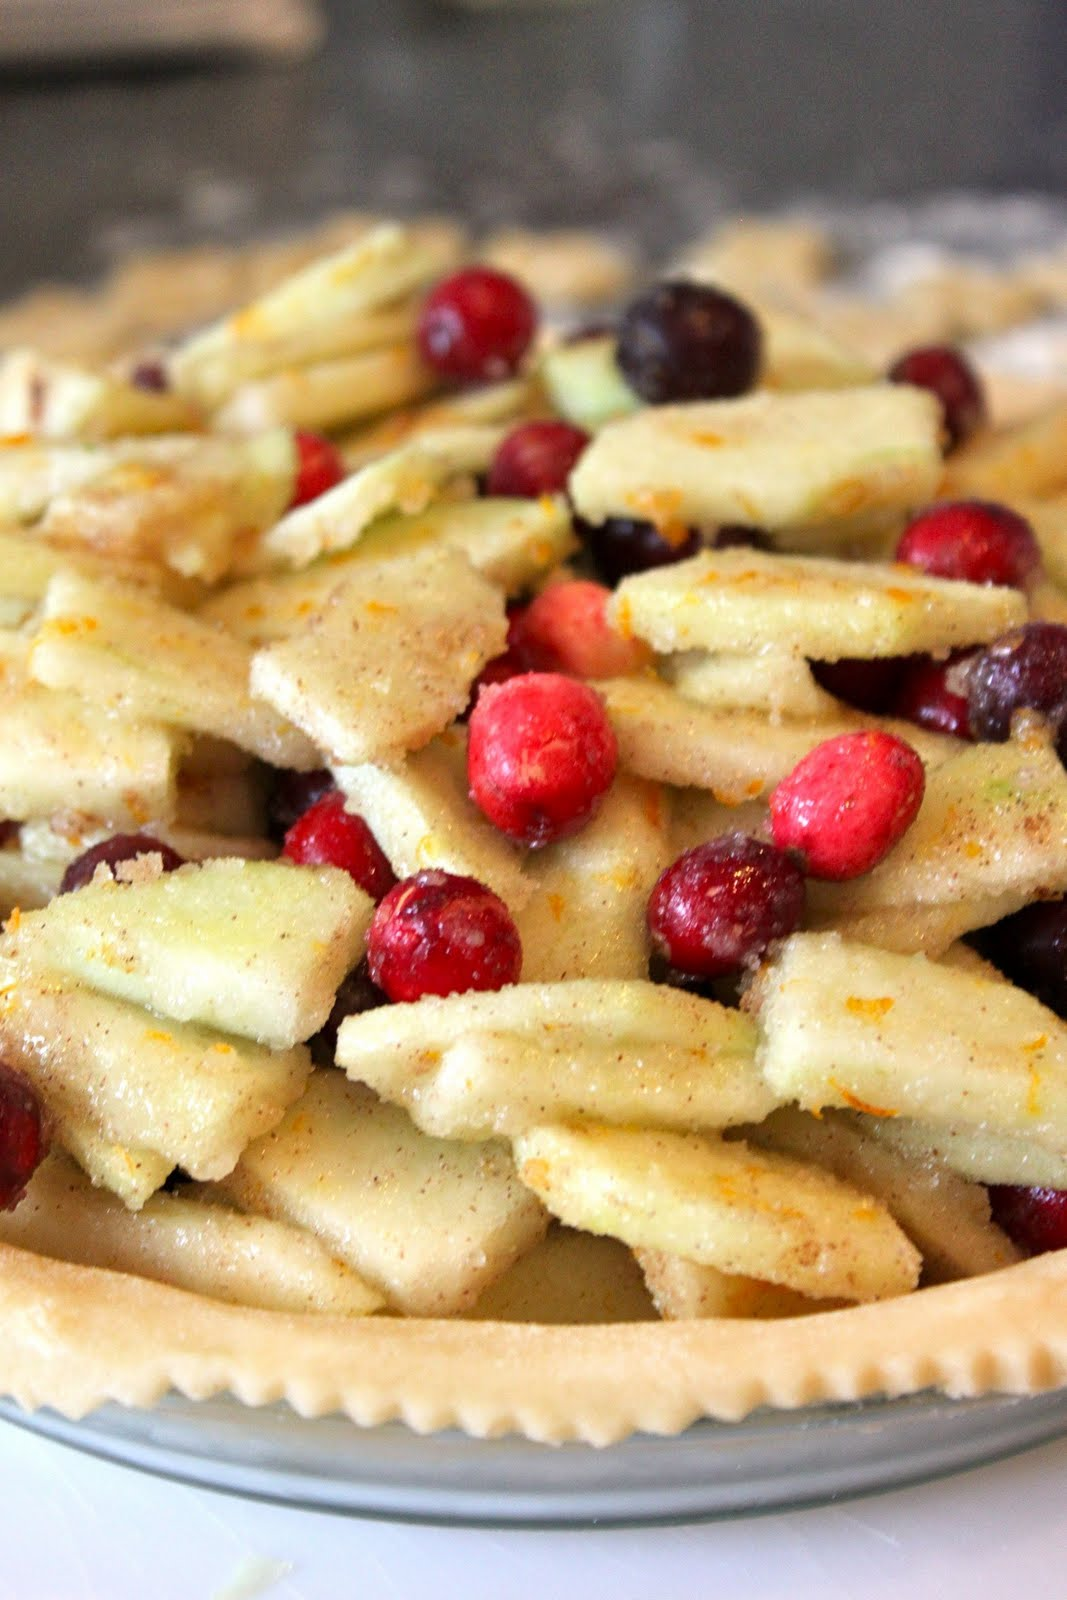 Baked Perfection: Cranberry Apple Pie